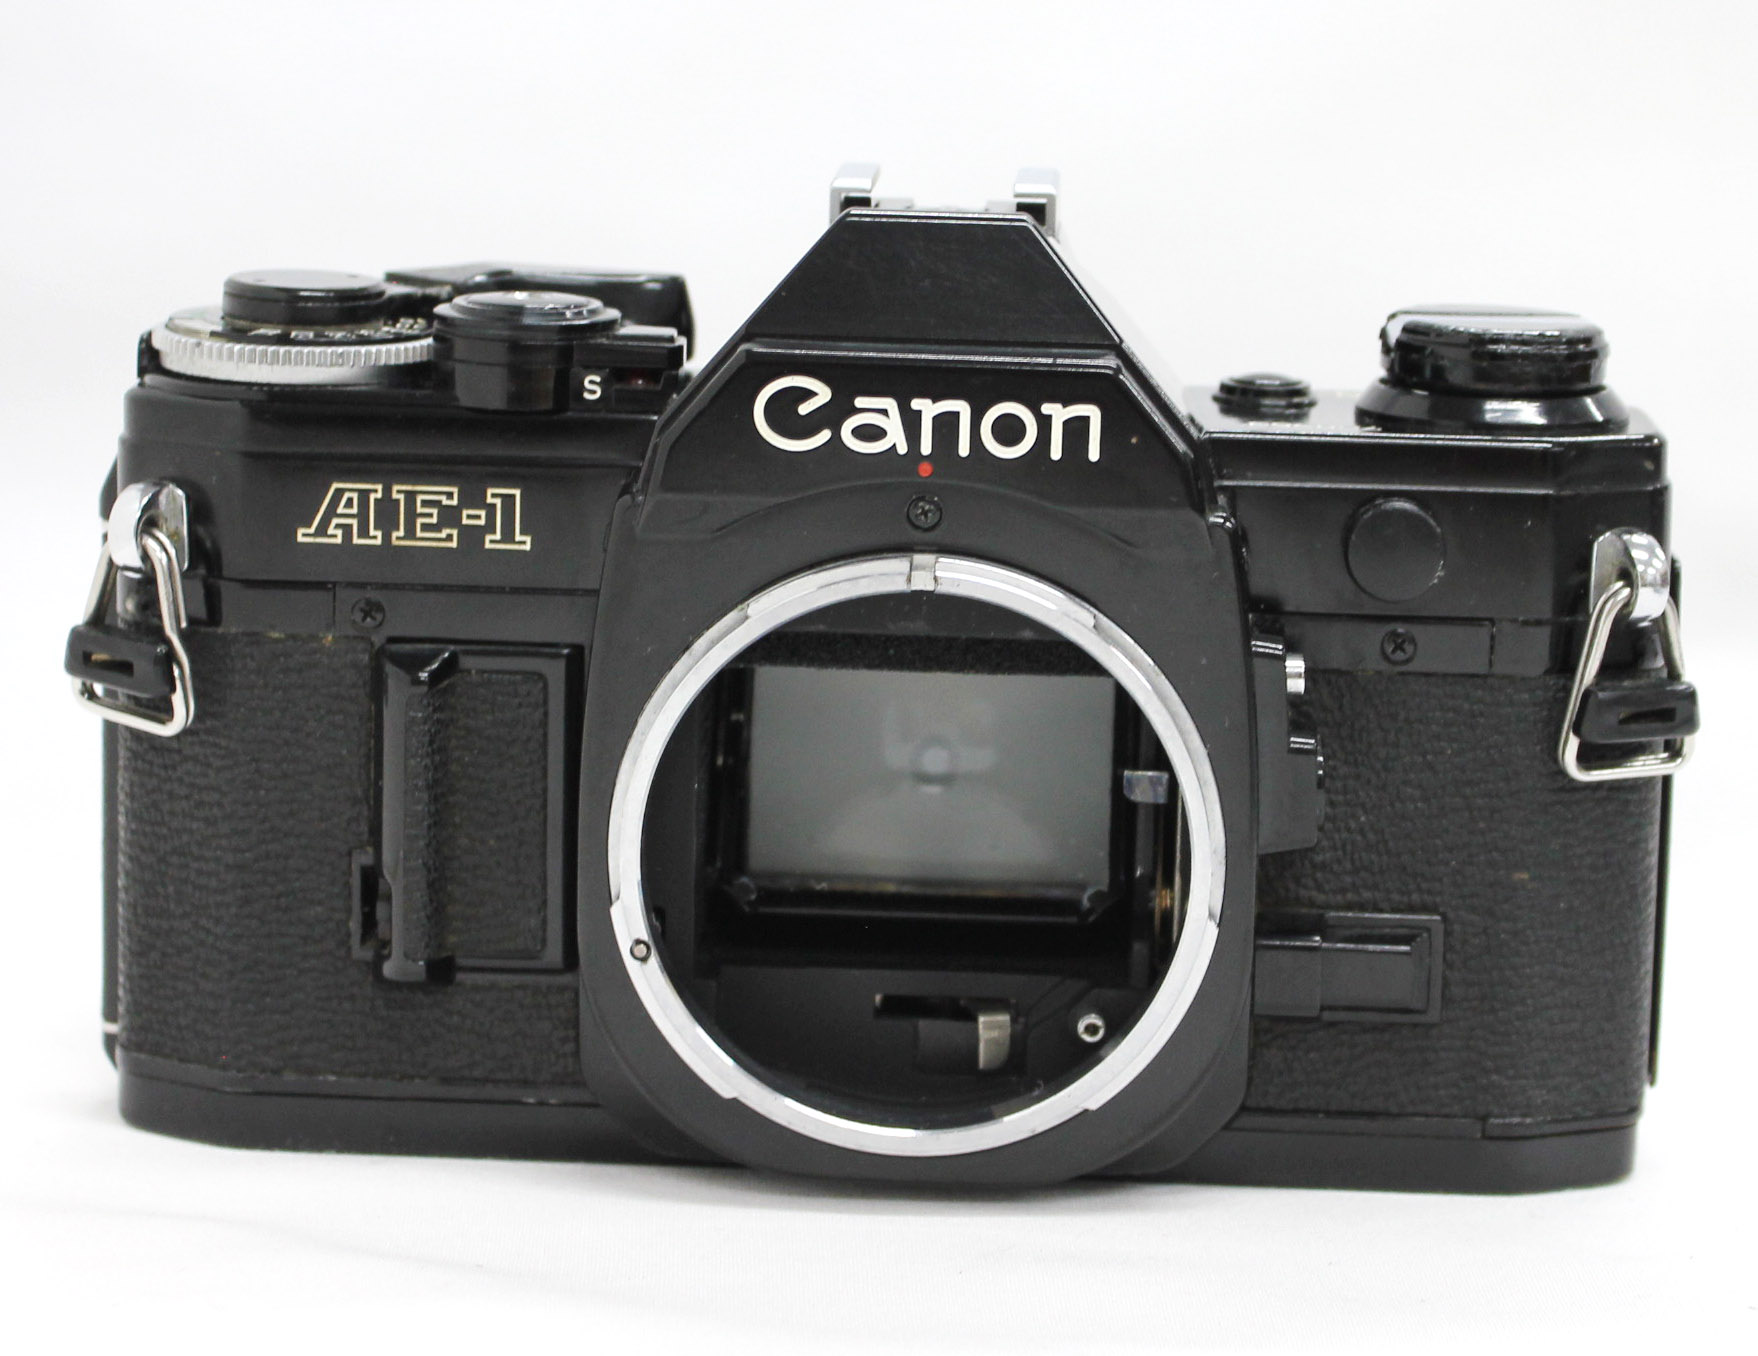 Canon AE-1 35mm SLR Film Camera Black with New FD 35-70mm F/3.5-4.5 Bonus Lens from Japan Photo 3